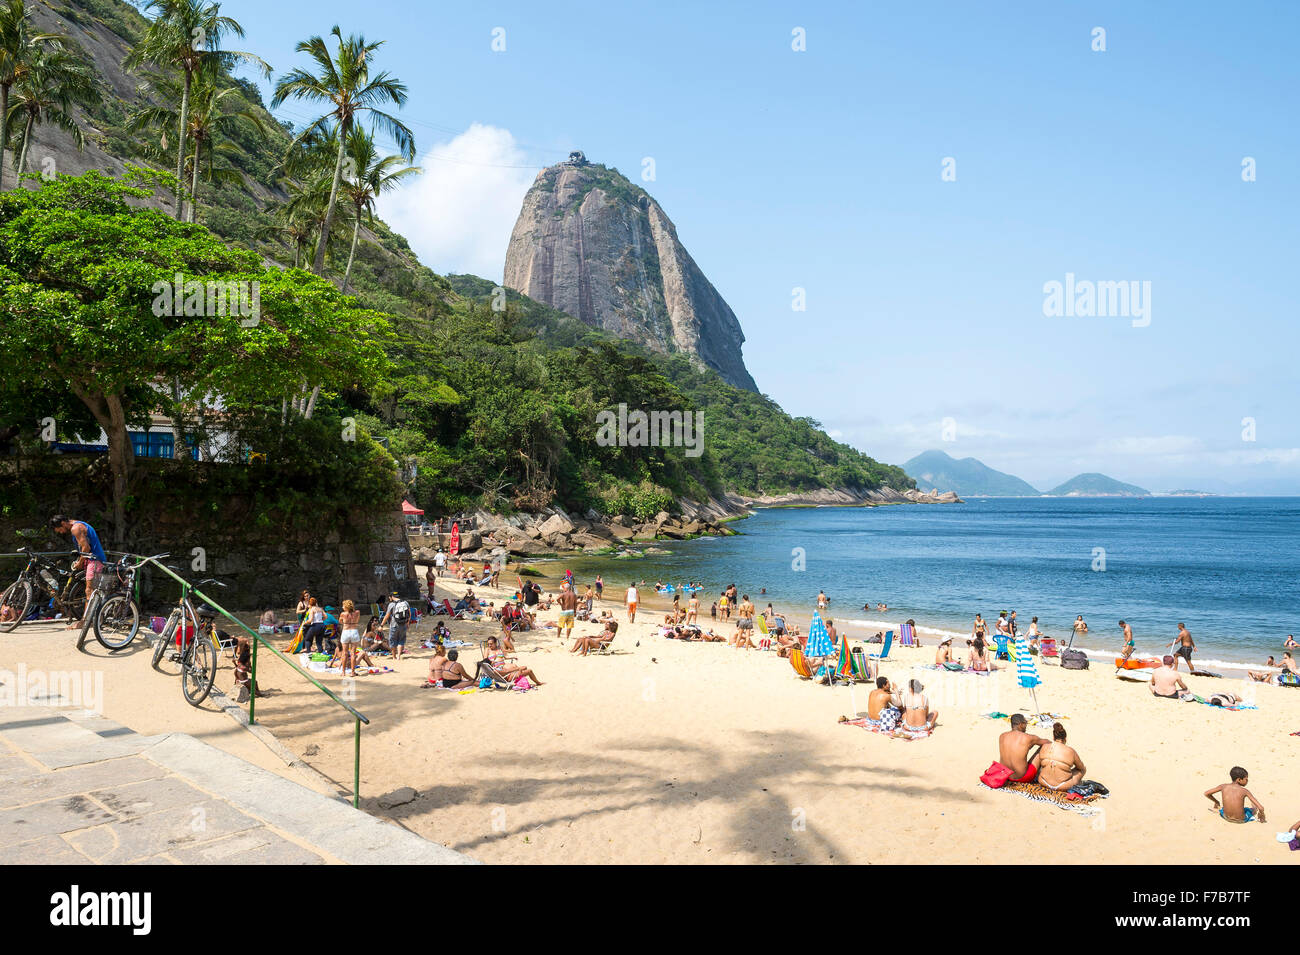 RIO DE JANEIRO, BRAZIL - OCTOBER 20, 2015: Beachgoers relax on Praia Vermelha Red Beach under a view of Sugarloaf - Stock Image